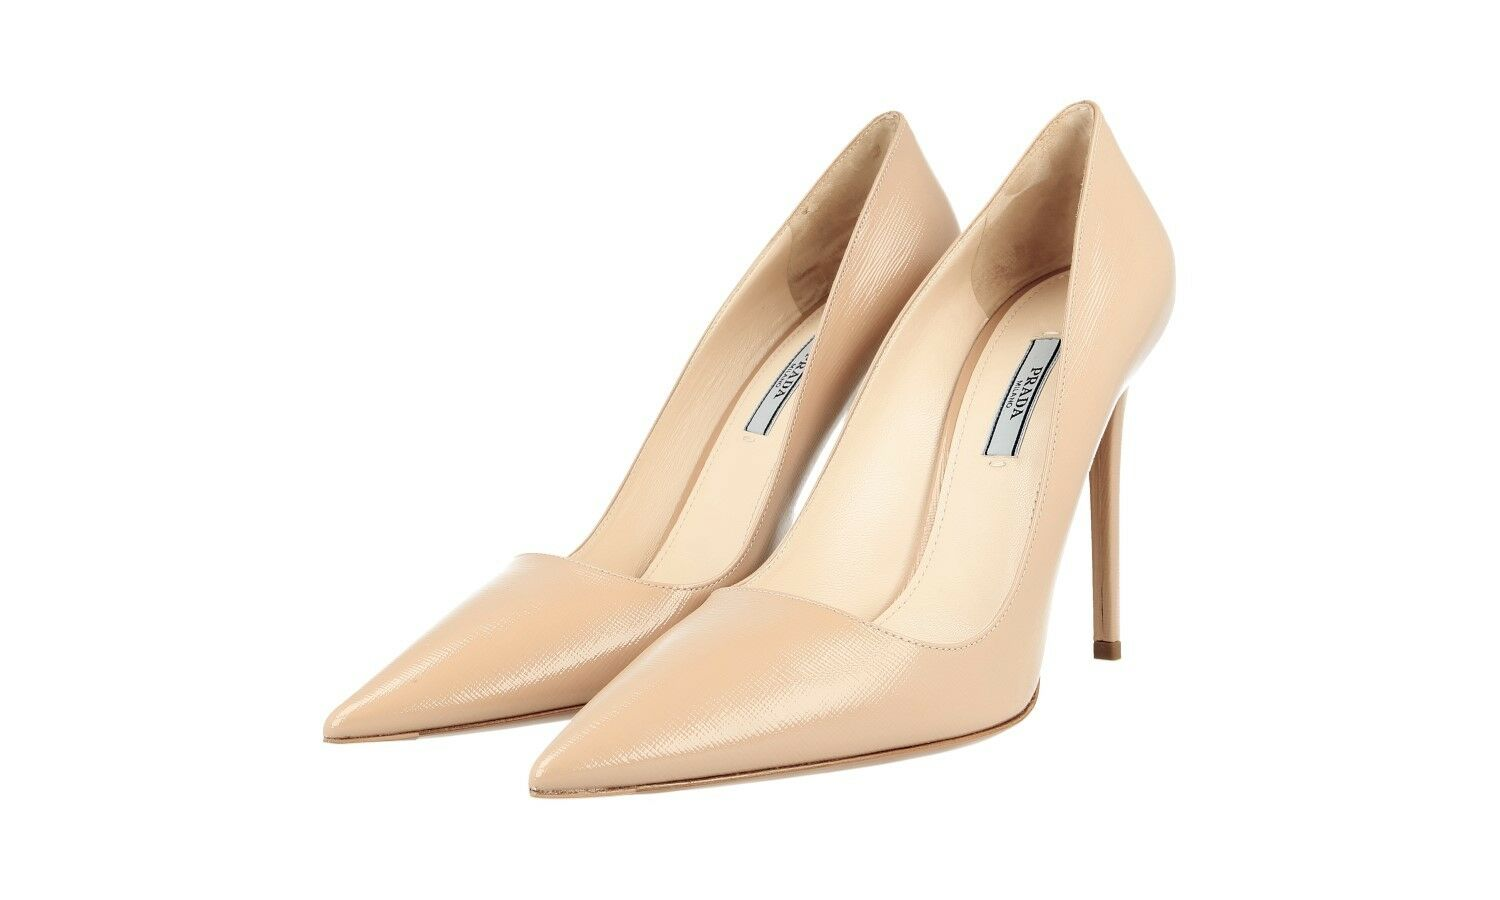 LUXUS PRADA SAFFIANO PUMPS SCHUHE 1I221F BEIGE NEU NEW 40,5 41 UK 7.5